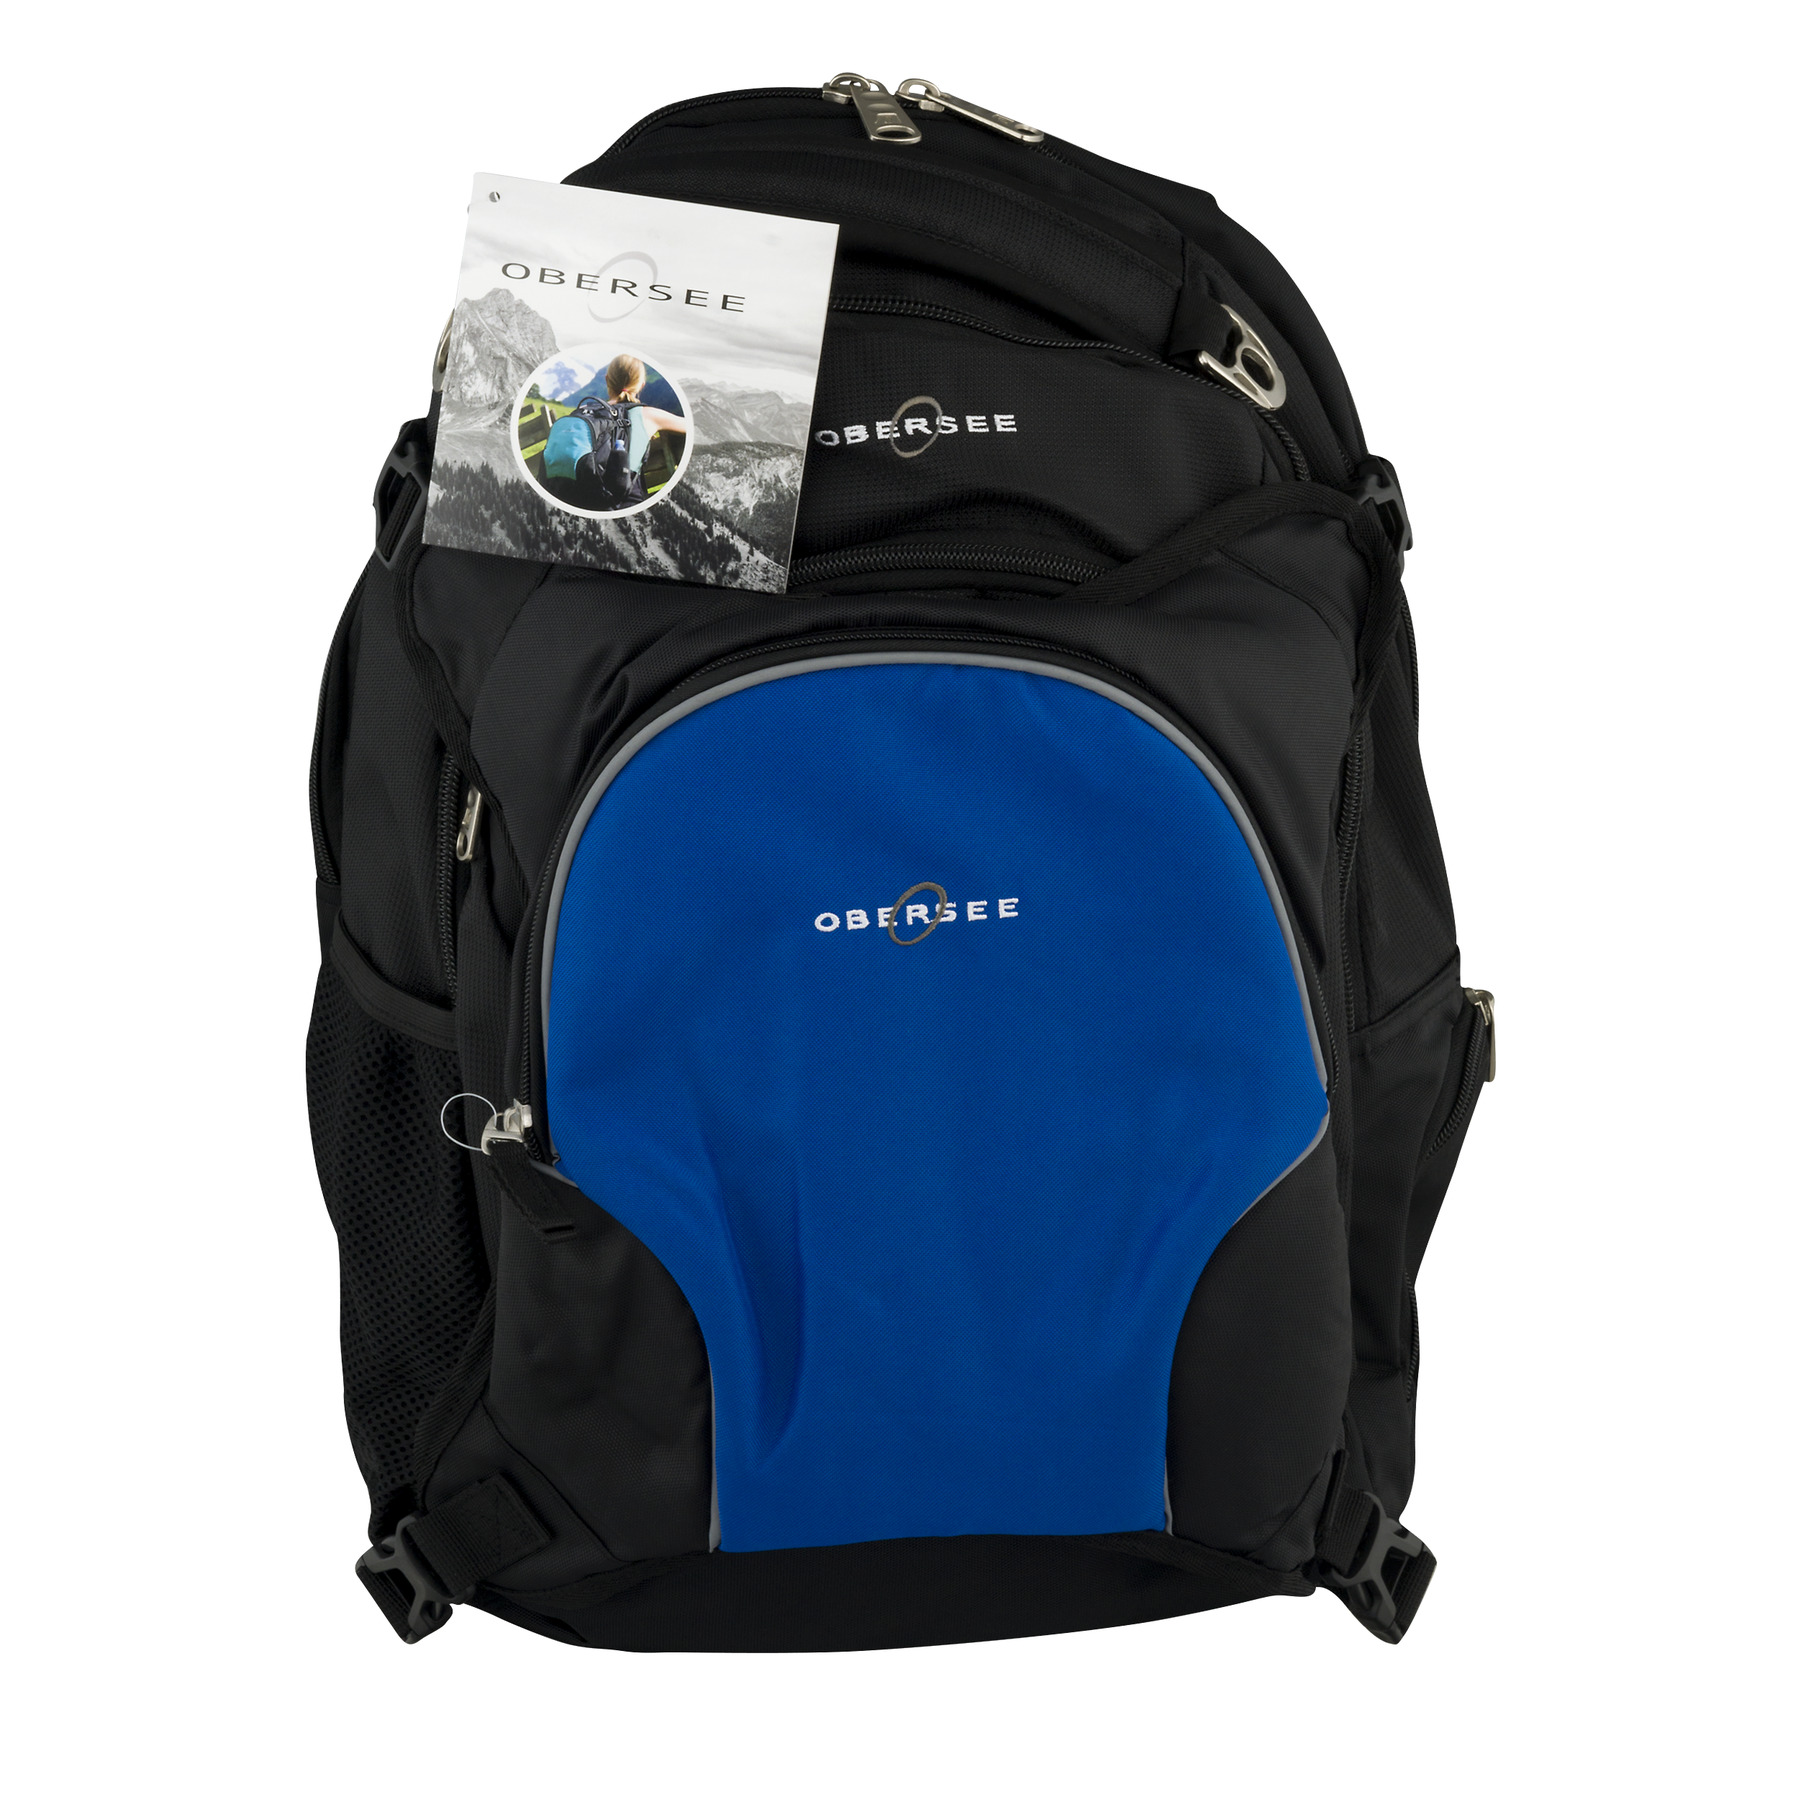 Obersee Oslo Diaper Bag Backpack and Cooler, Black/Royal Blue